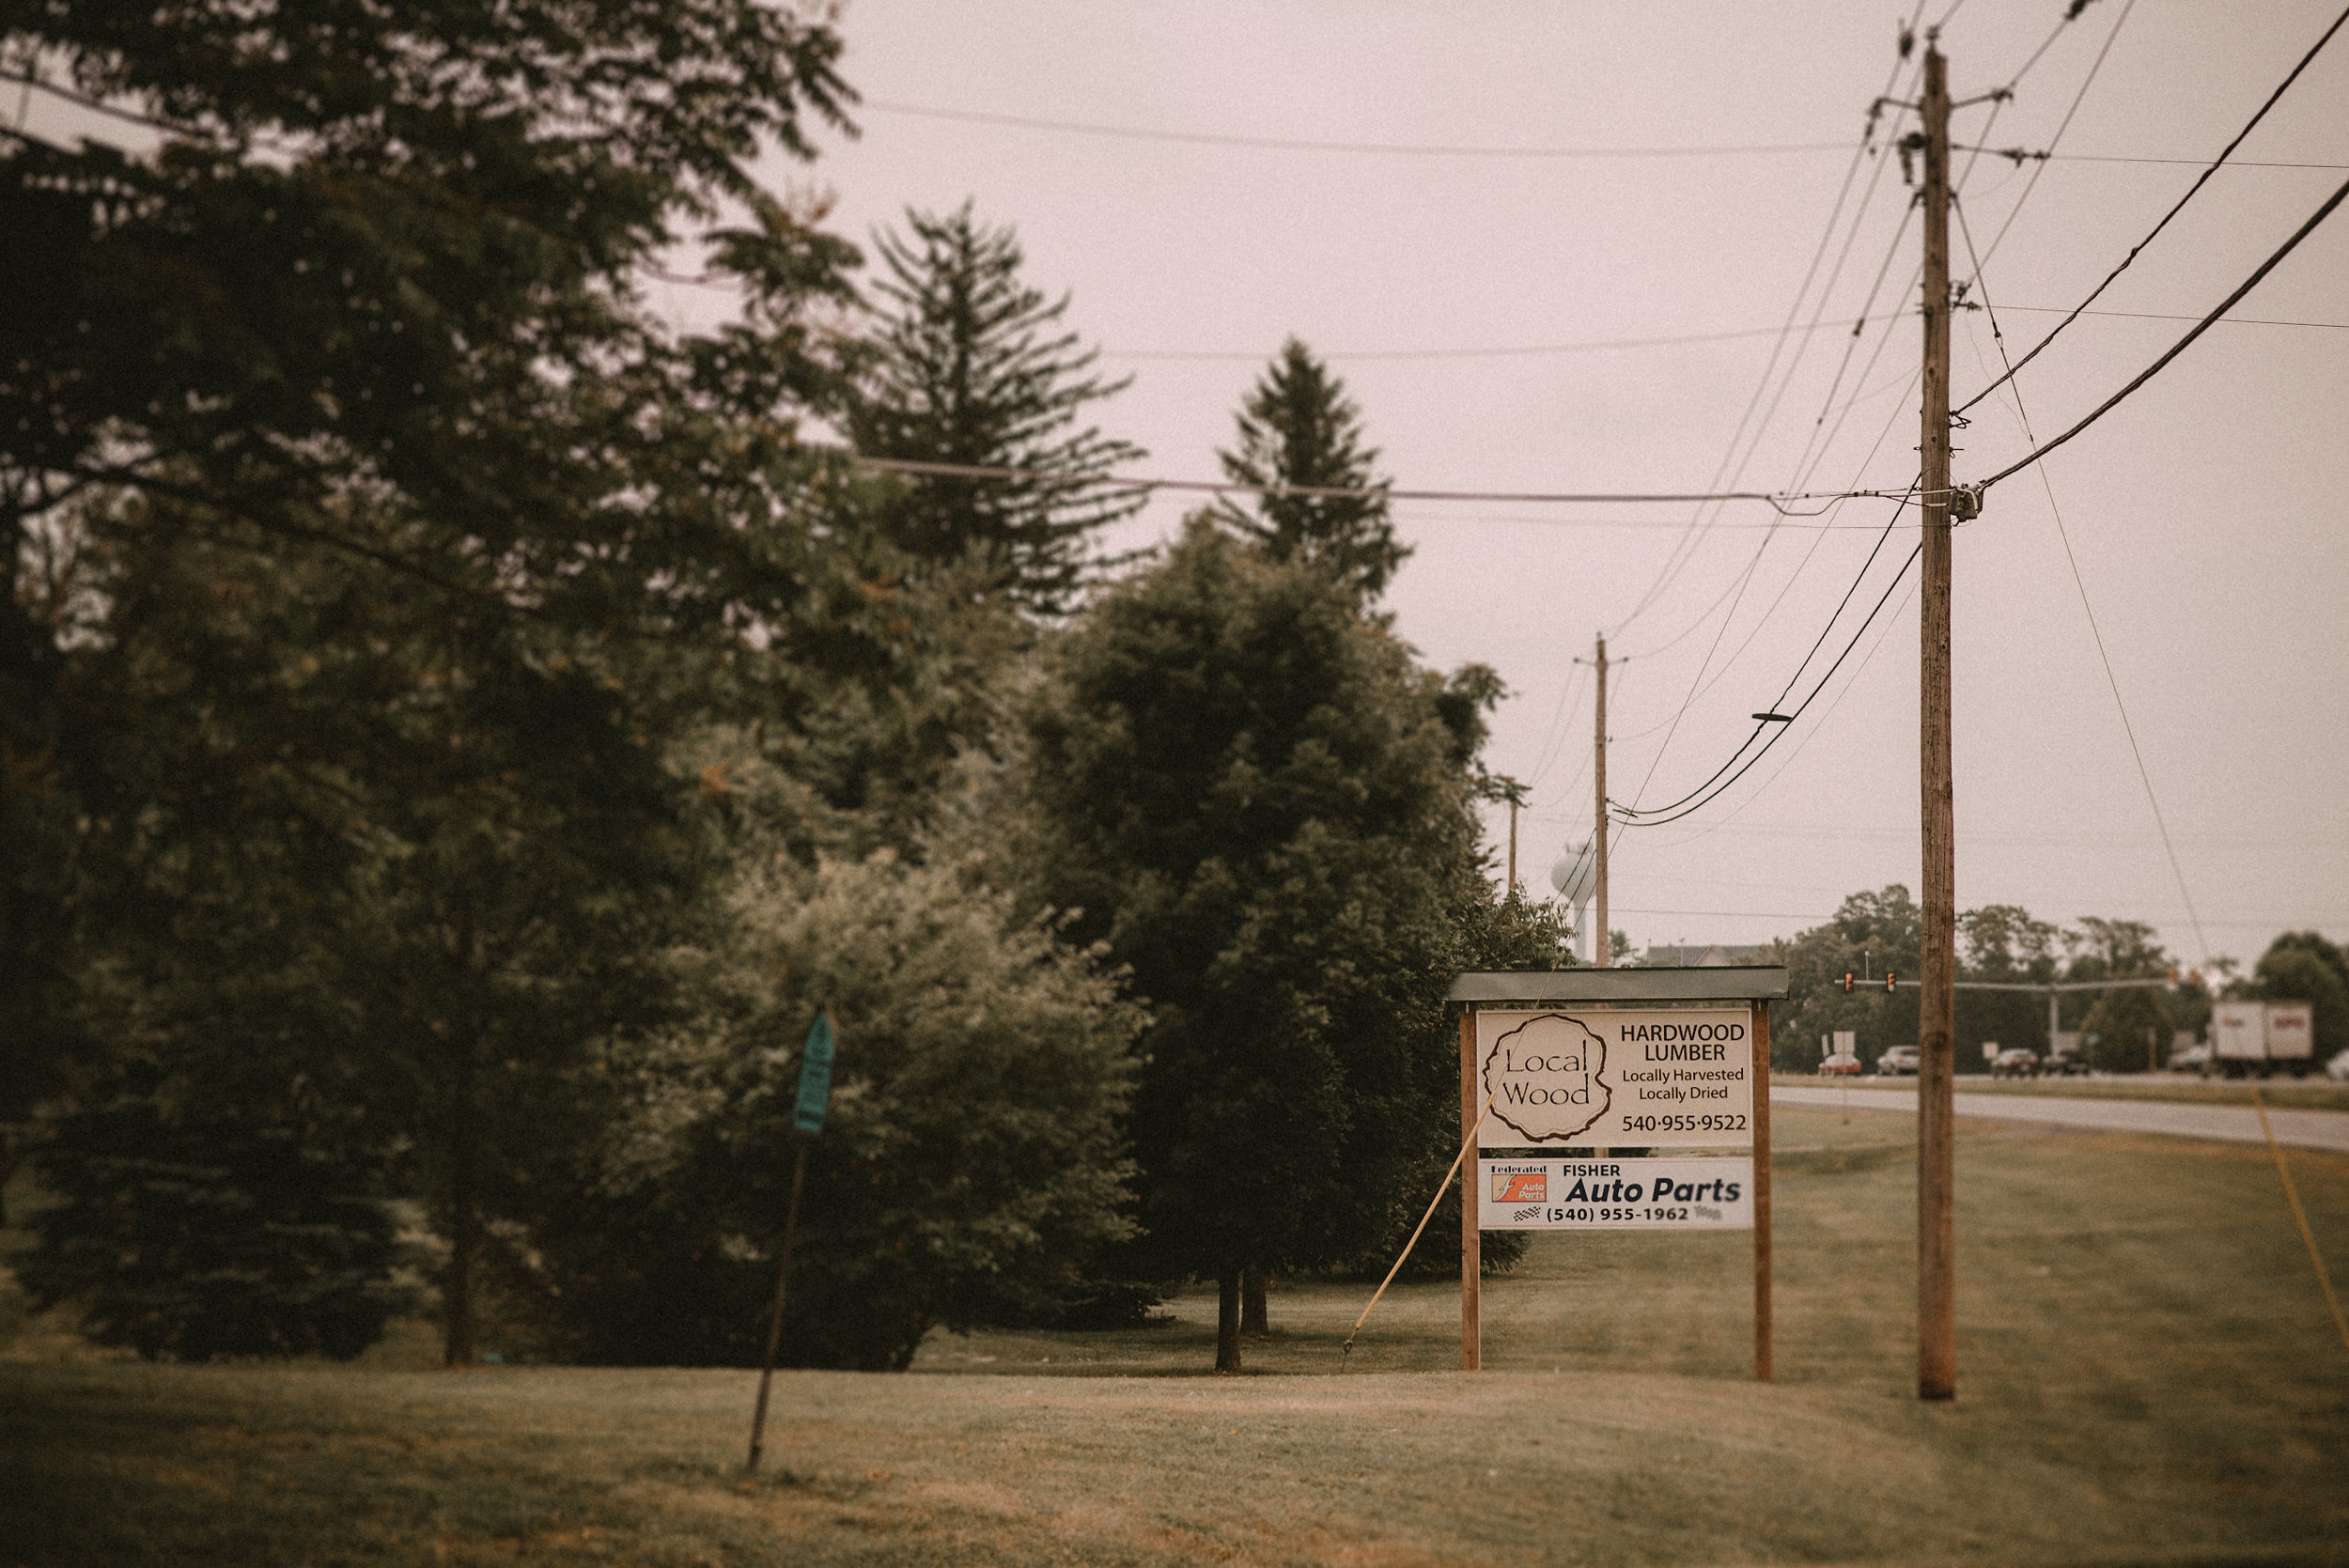 Business sign in front of pine trees